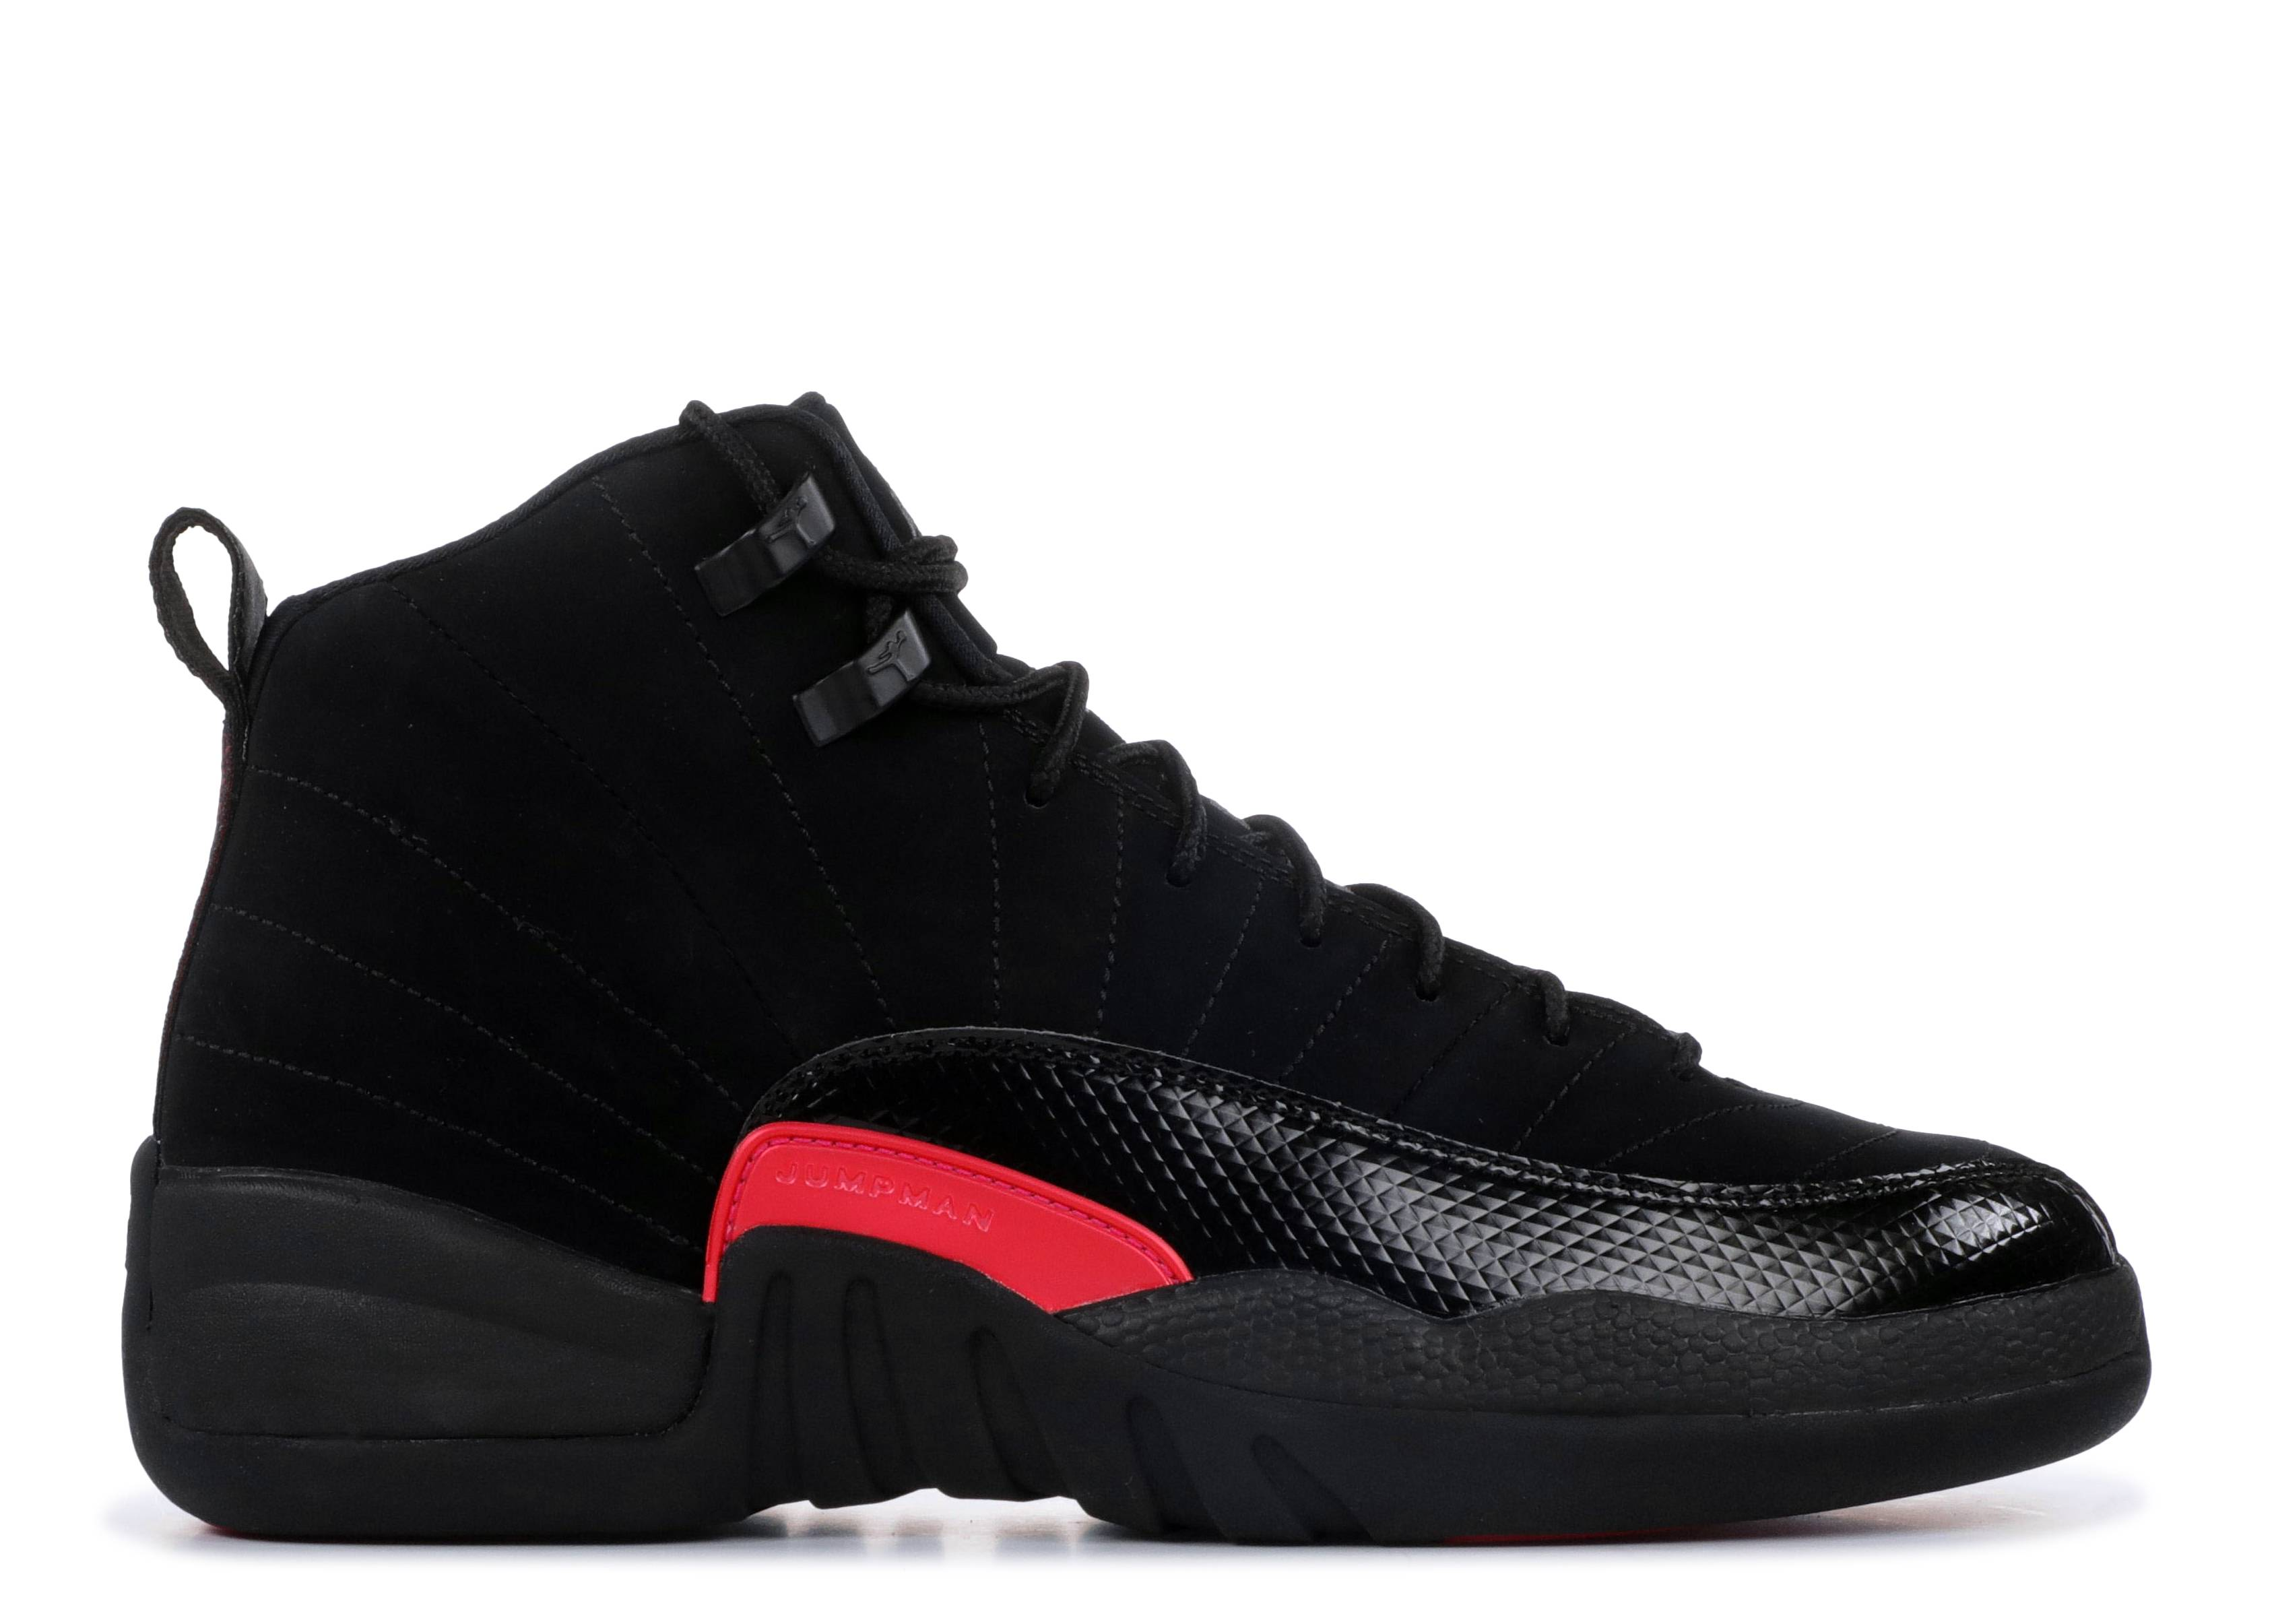 d8b00b2bd432 Air Jordan 12 (XII) Shoes - Nike